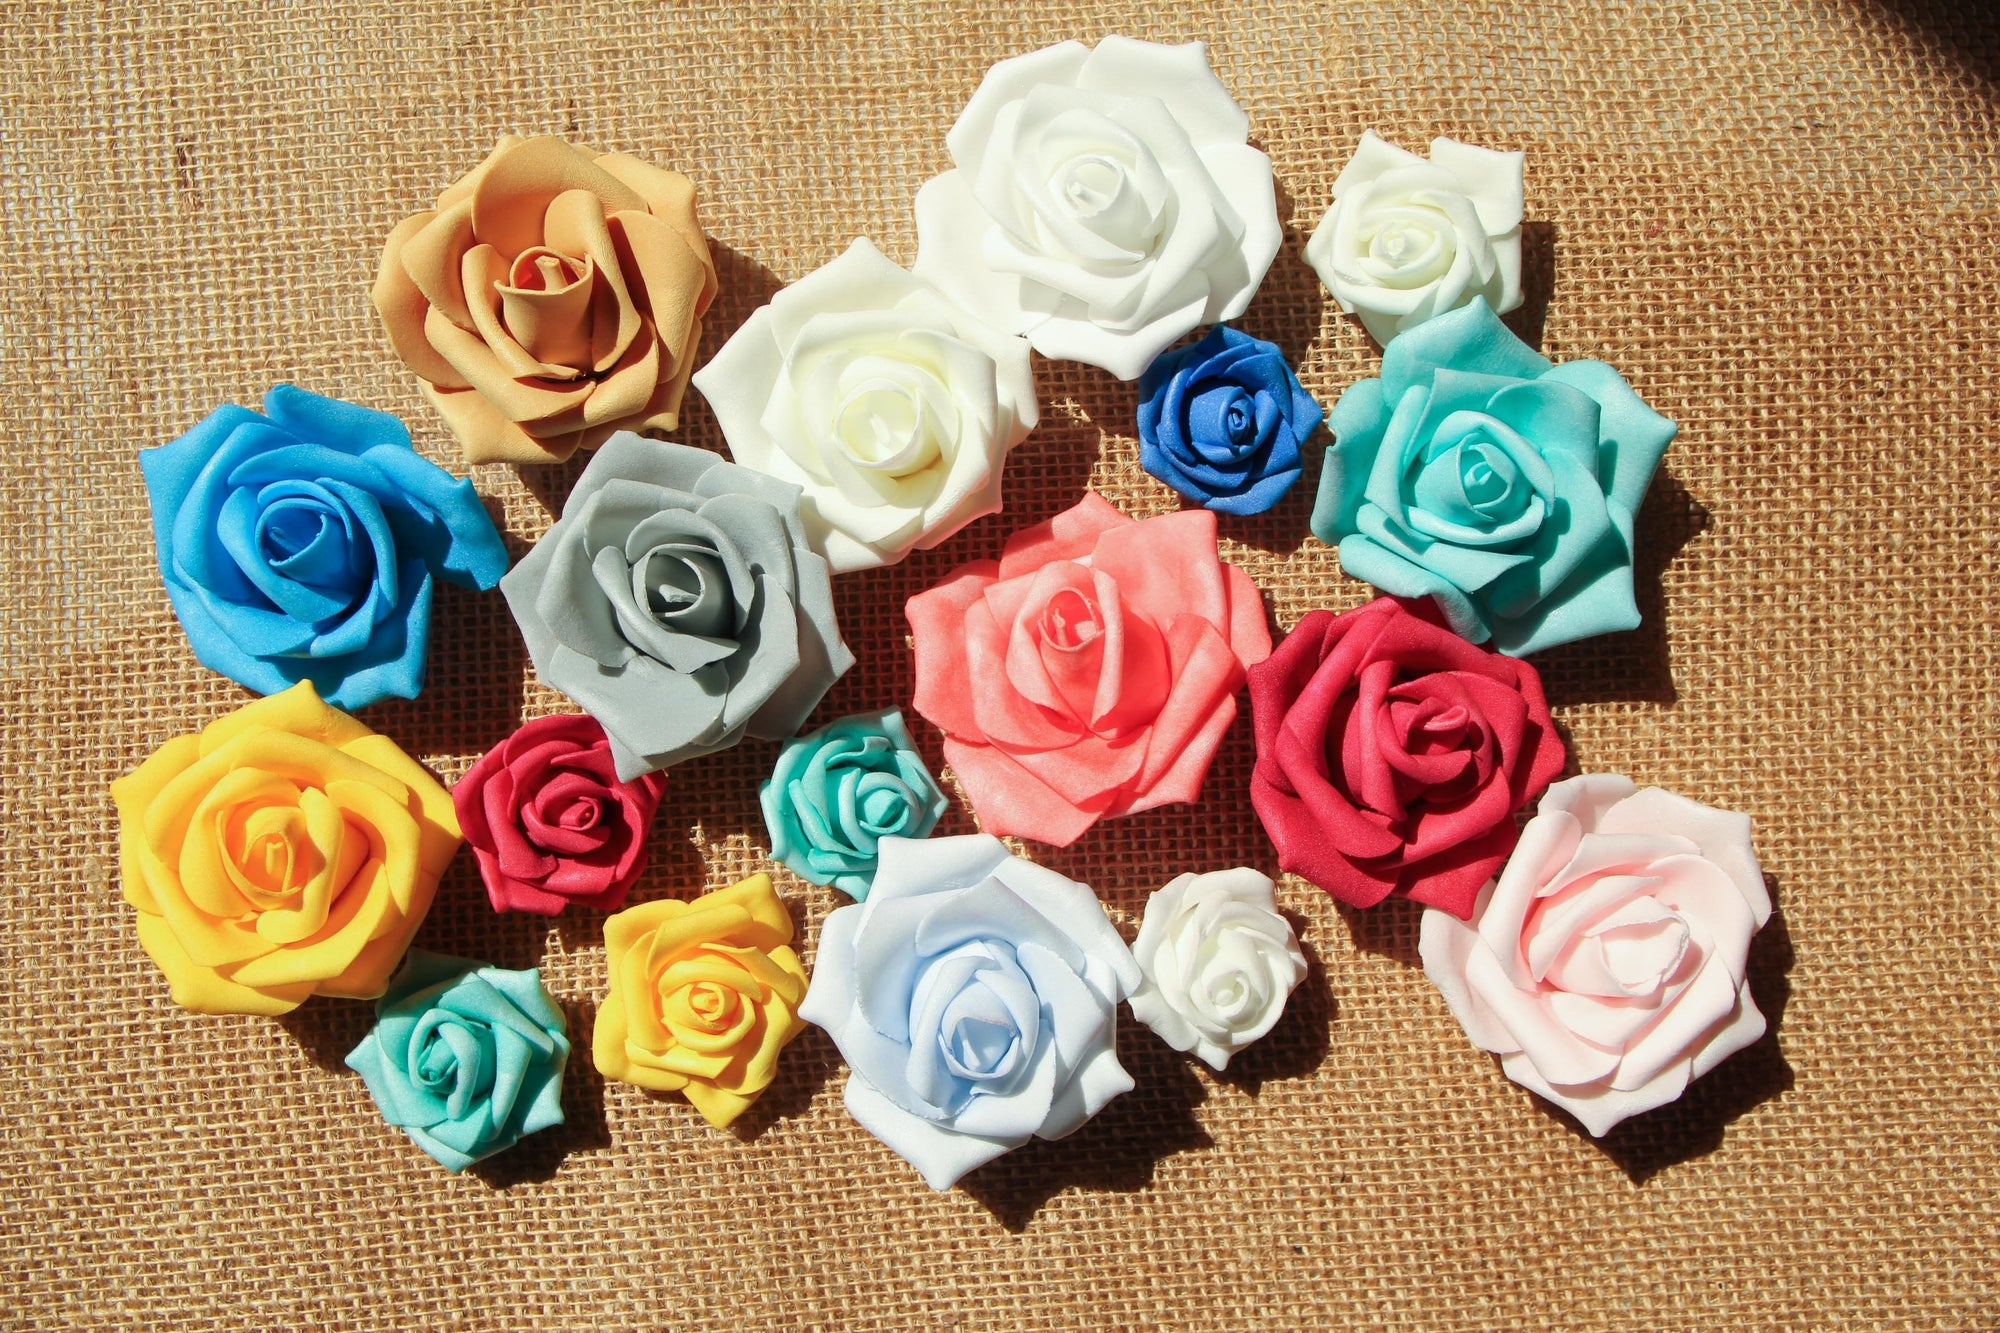 Small Foam Flowers Without Stem (12 pieces)